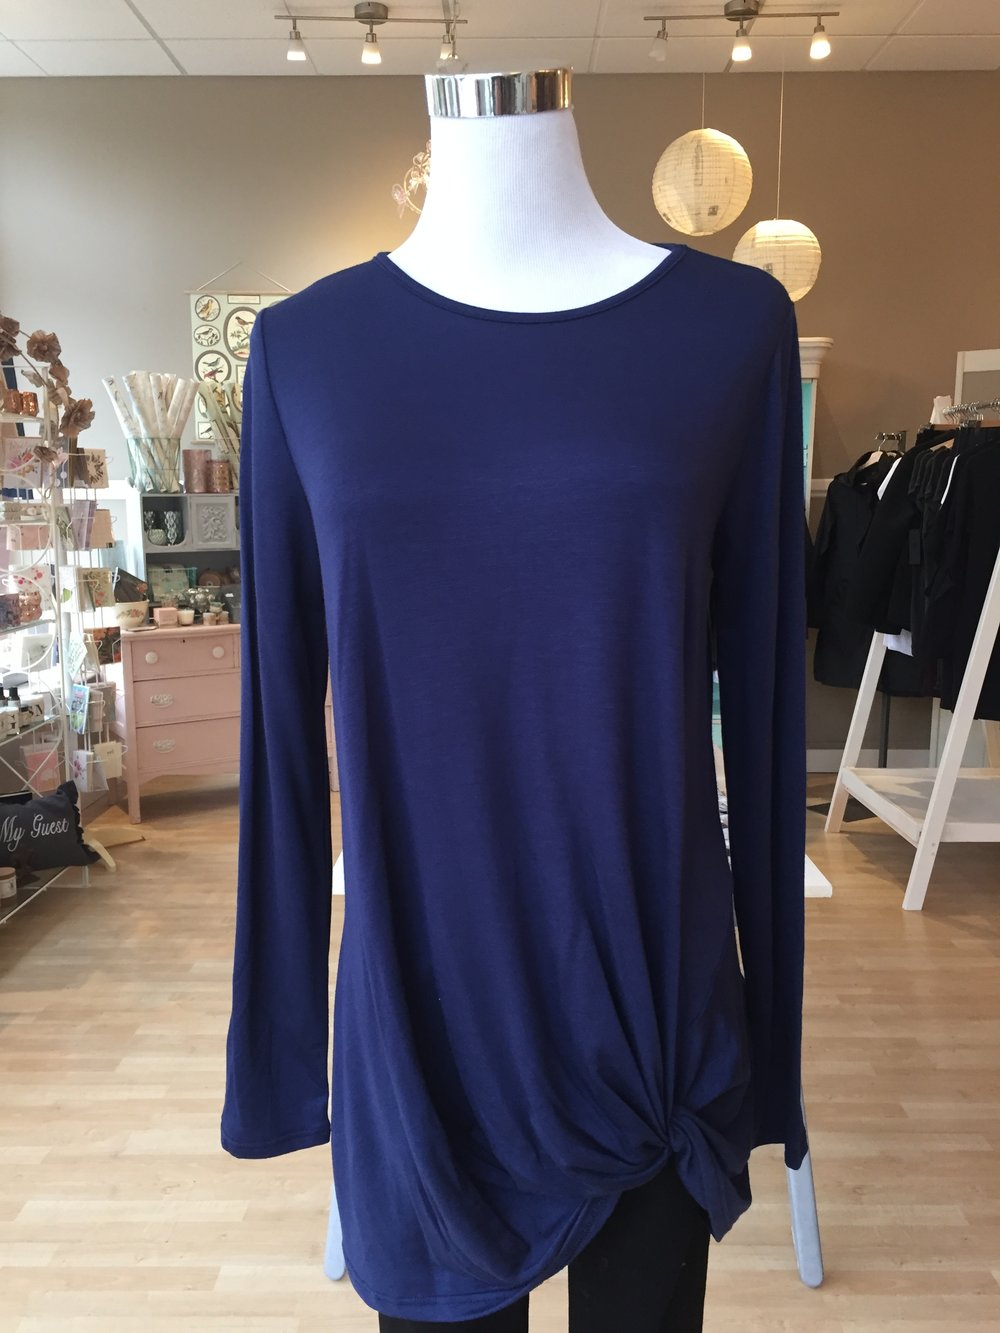 Navy Knot Top $32